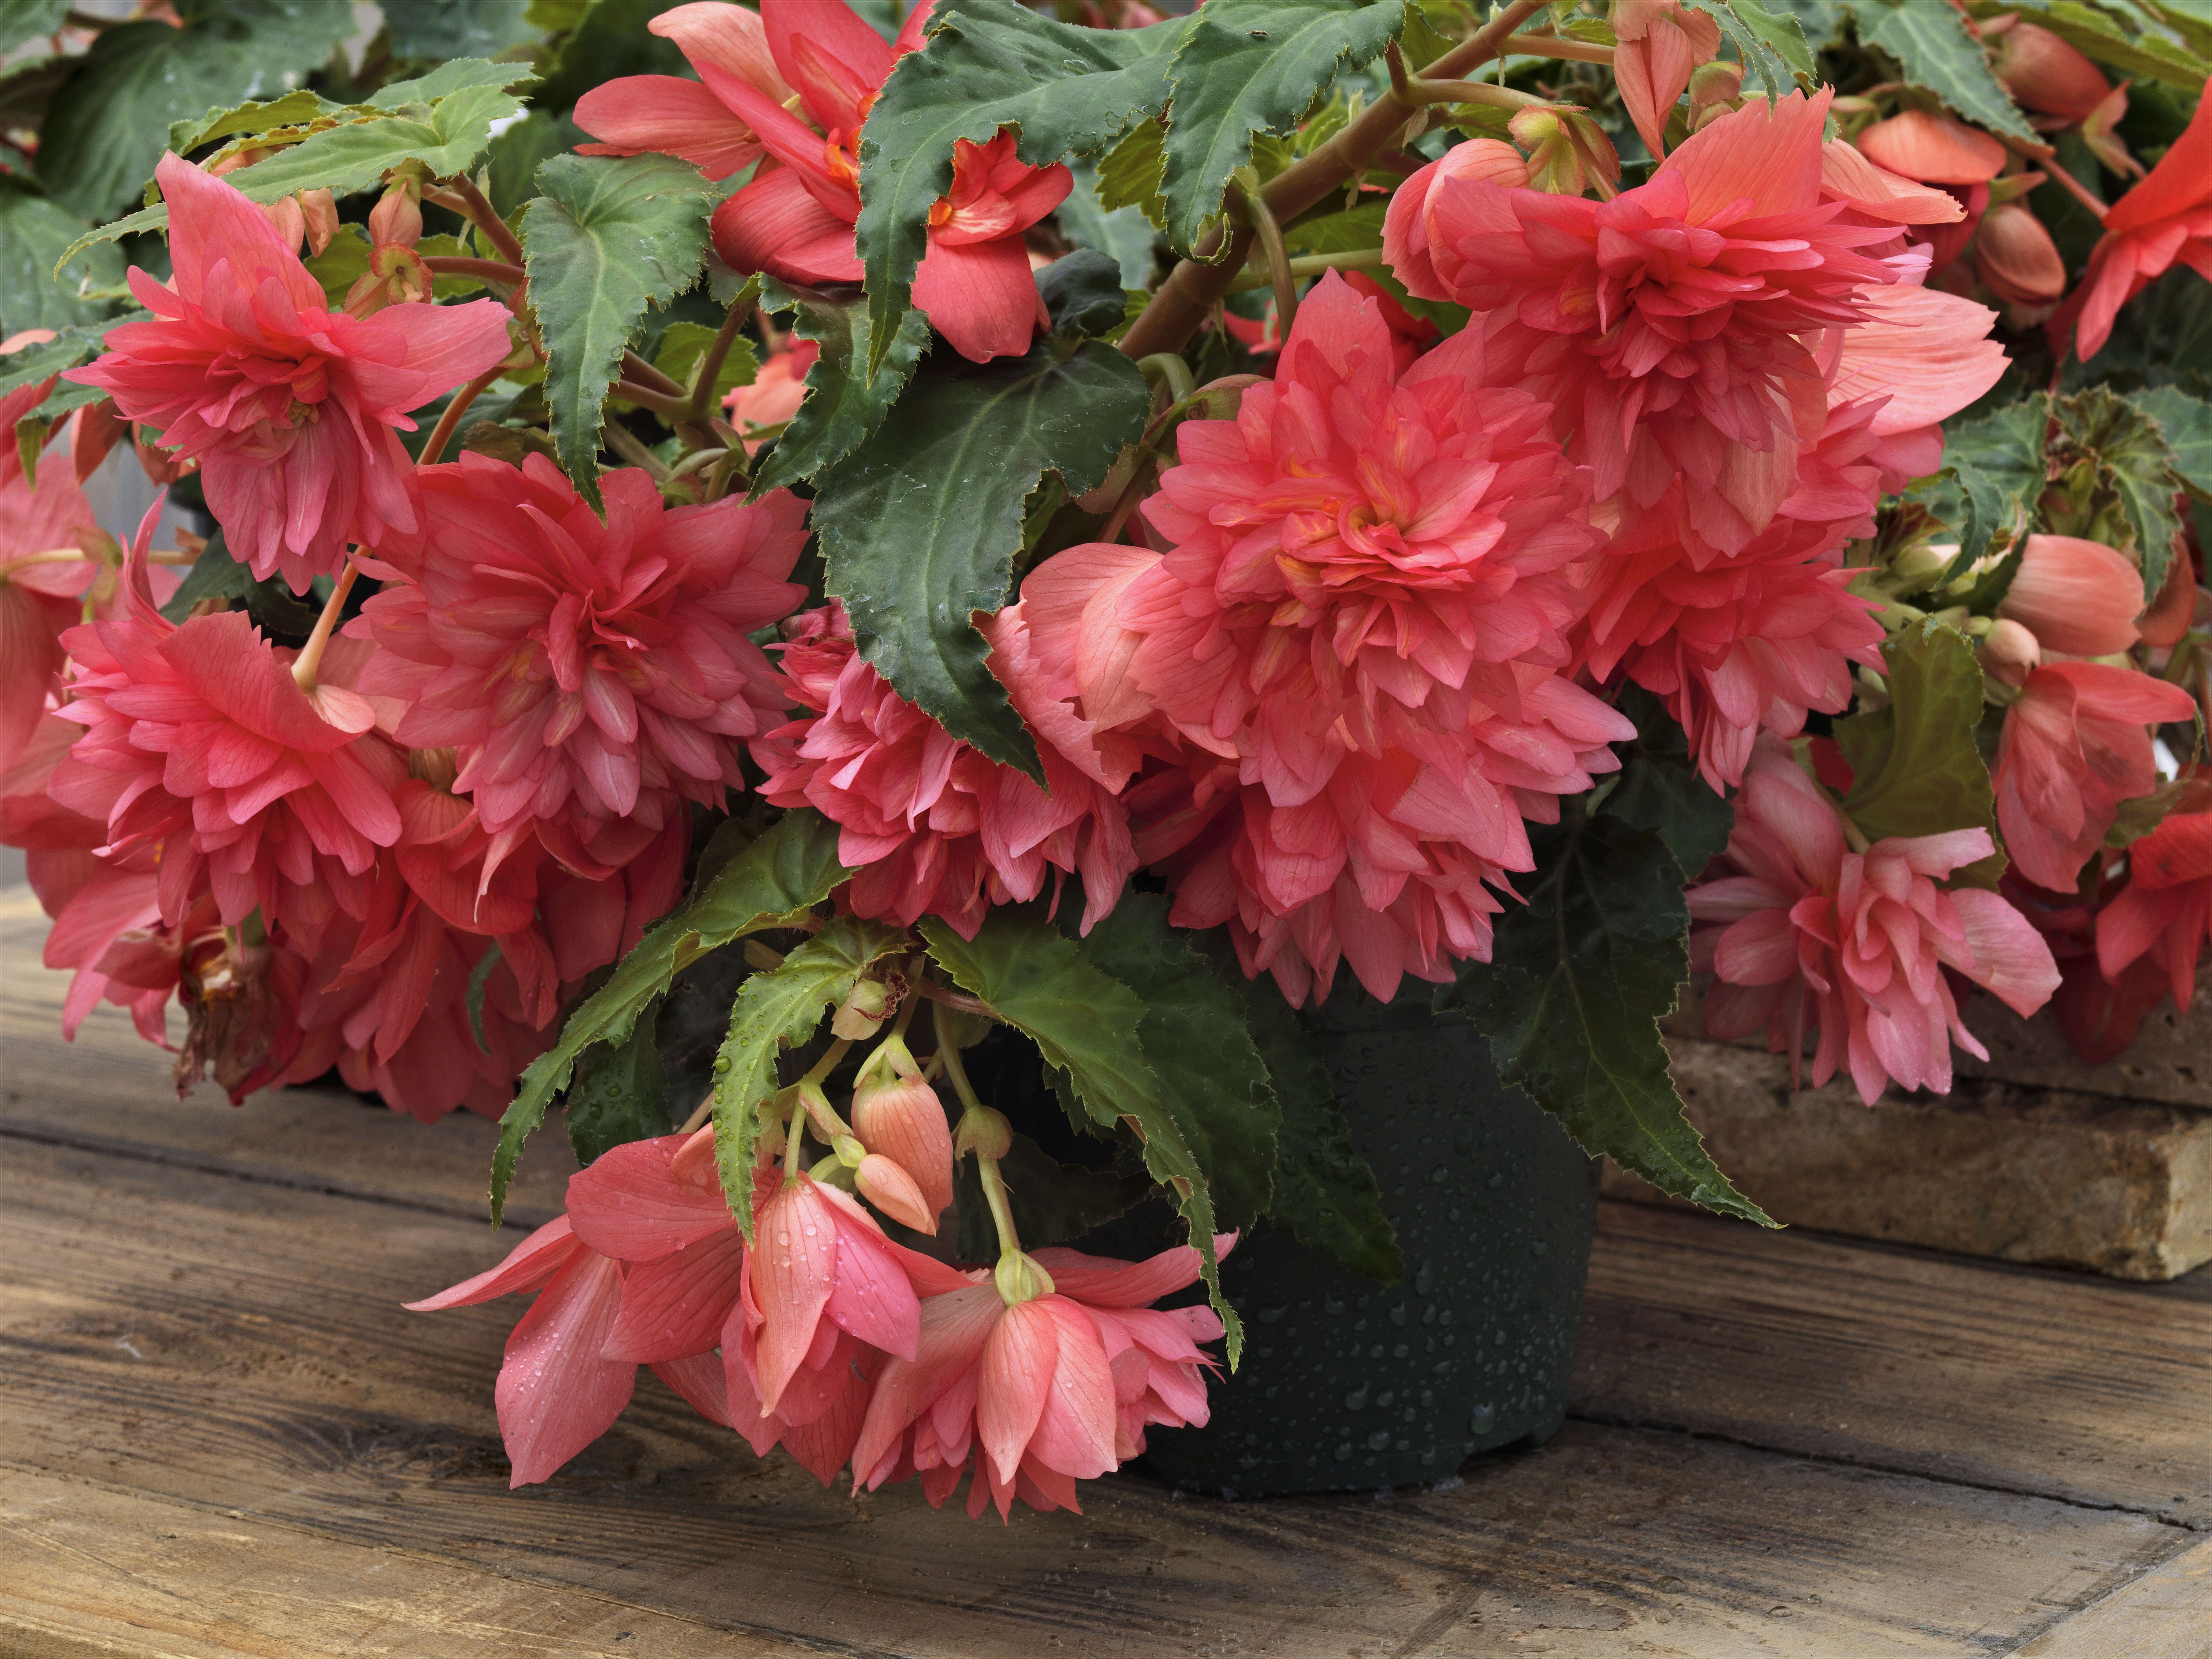 Find This Pin And More On Patio Pots And Containers By Nationalgarden.